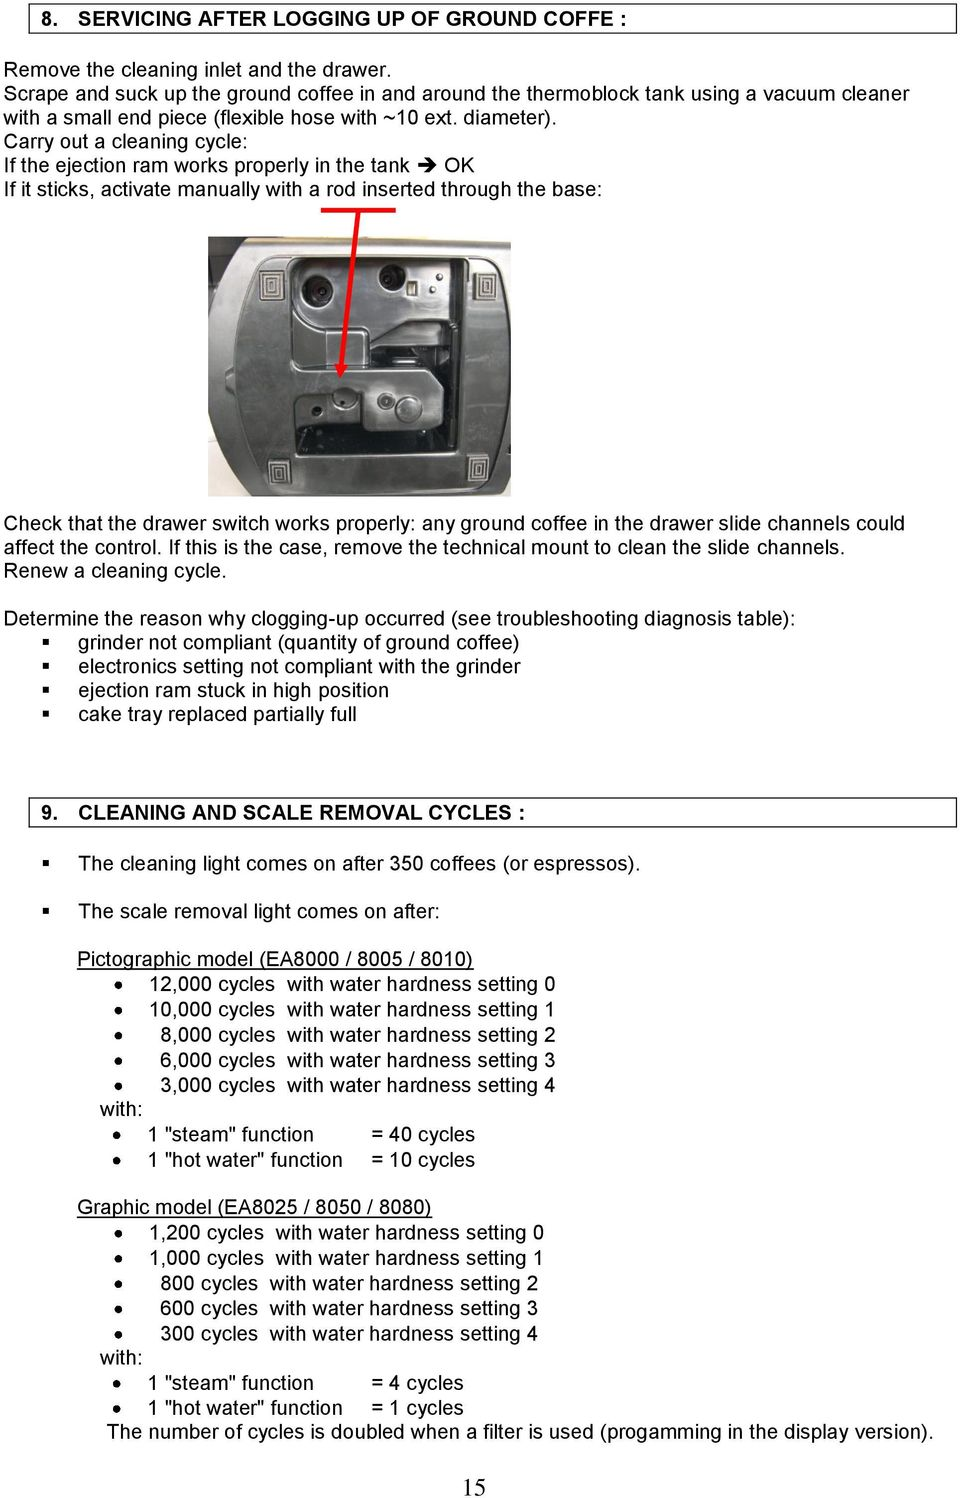 Manuel De Reparation Automatic Espresseria Krups Issue 0 Contents Pdf Schematic Cutaway Showing Slide Cycle And Case Ejection Carry Out A Cleaning If The Ram Works Properly In Tank Ok